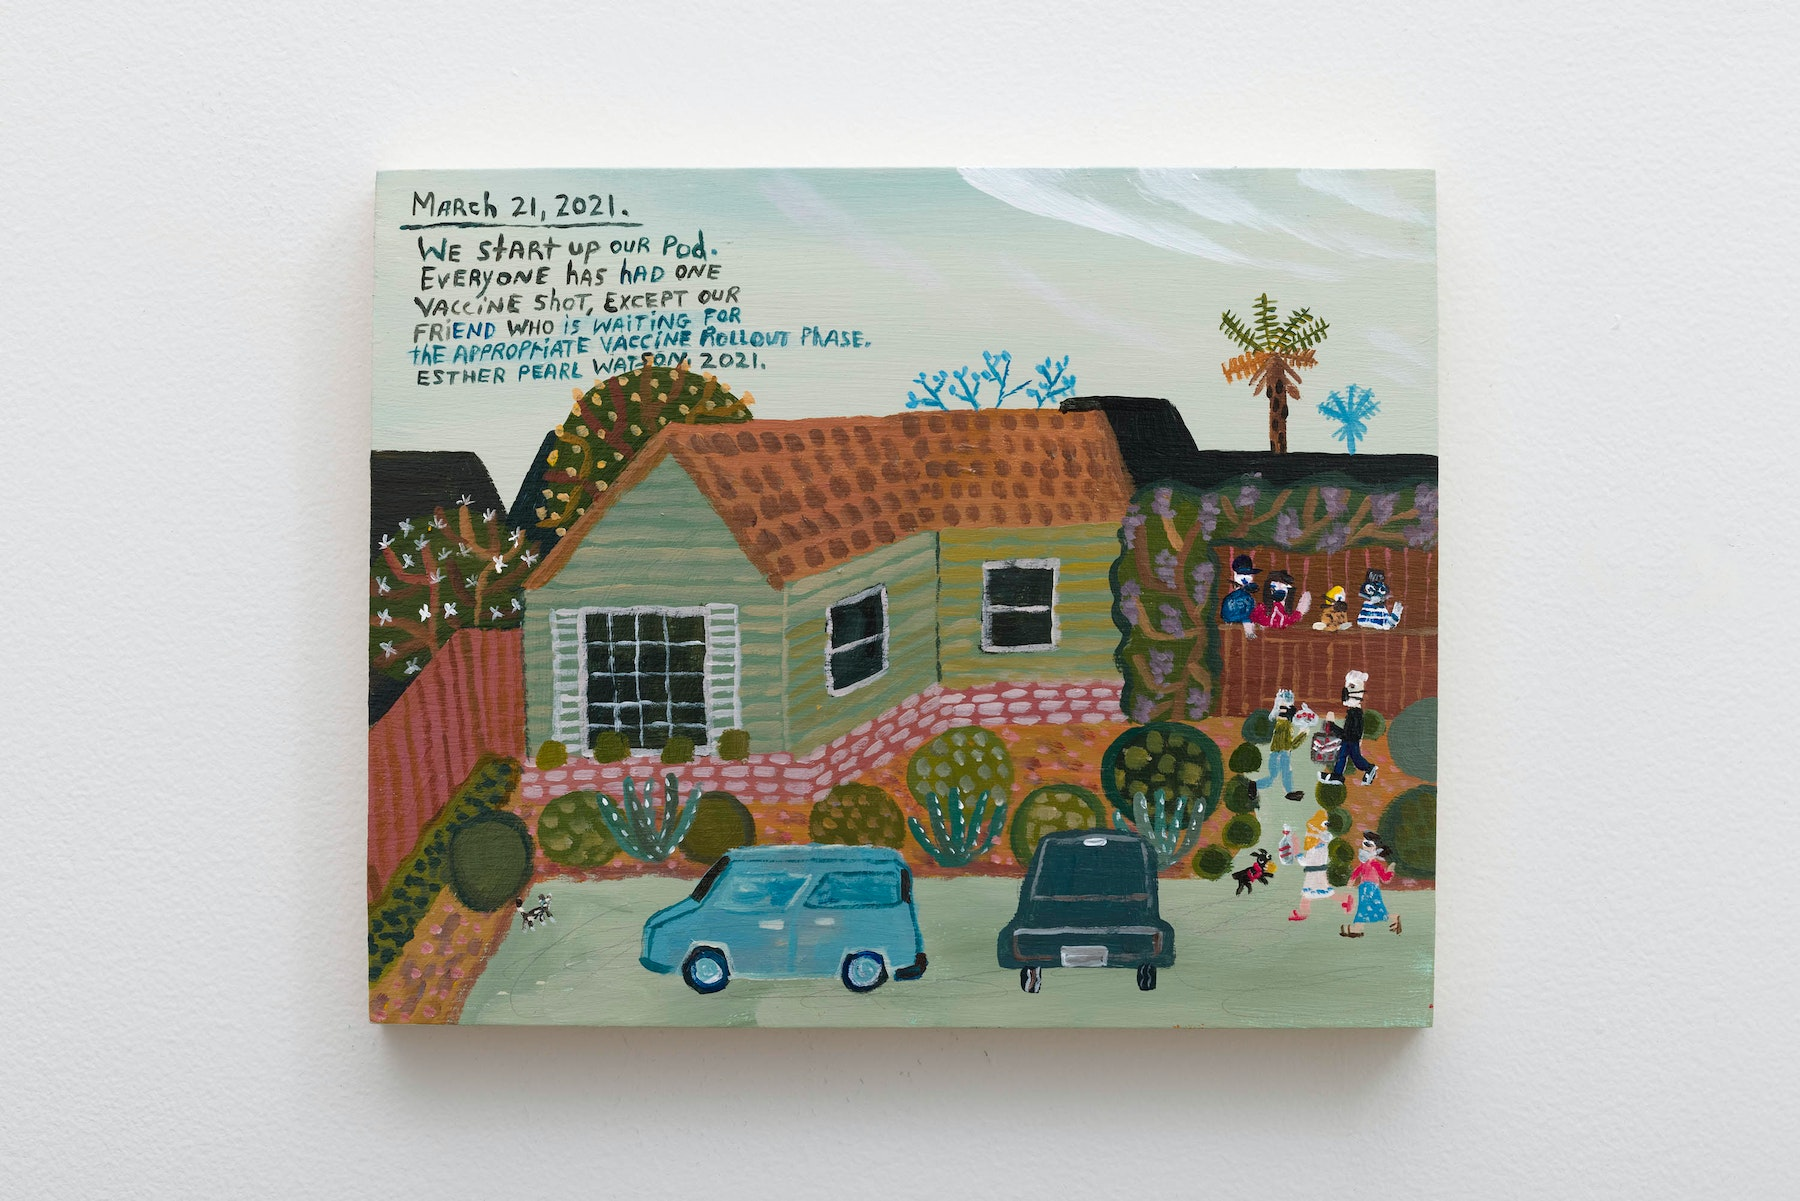 """Esther Pearl Watson """"March 21, We Start Up Our Pod,"""" 2021 Acrylic on panel 8"""" x 10"""" [HxW] (20.32 x 25.4 cm) Inventory #EPW412 Courtesy of the artist and Vielmetter Los Angeles Photo credit: Jeff McLane Signed and dated on back"""